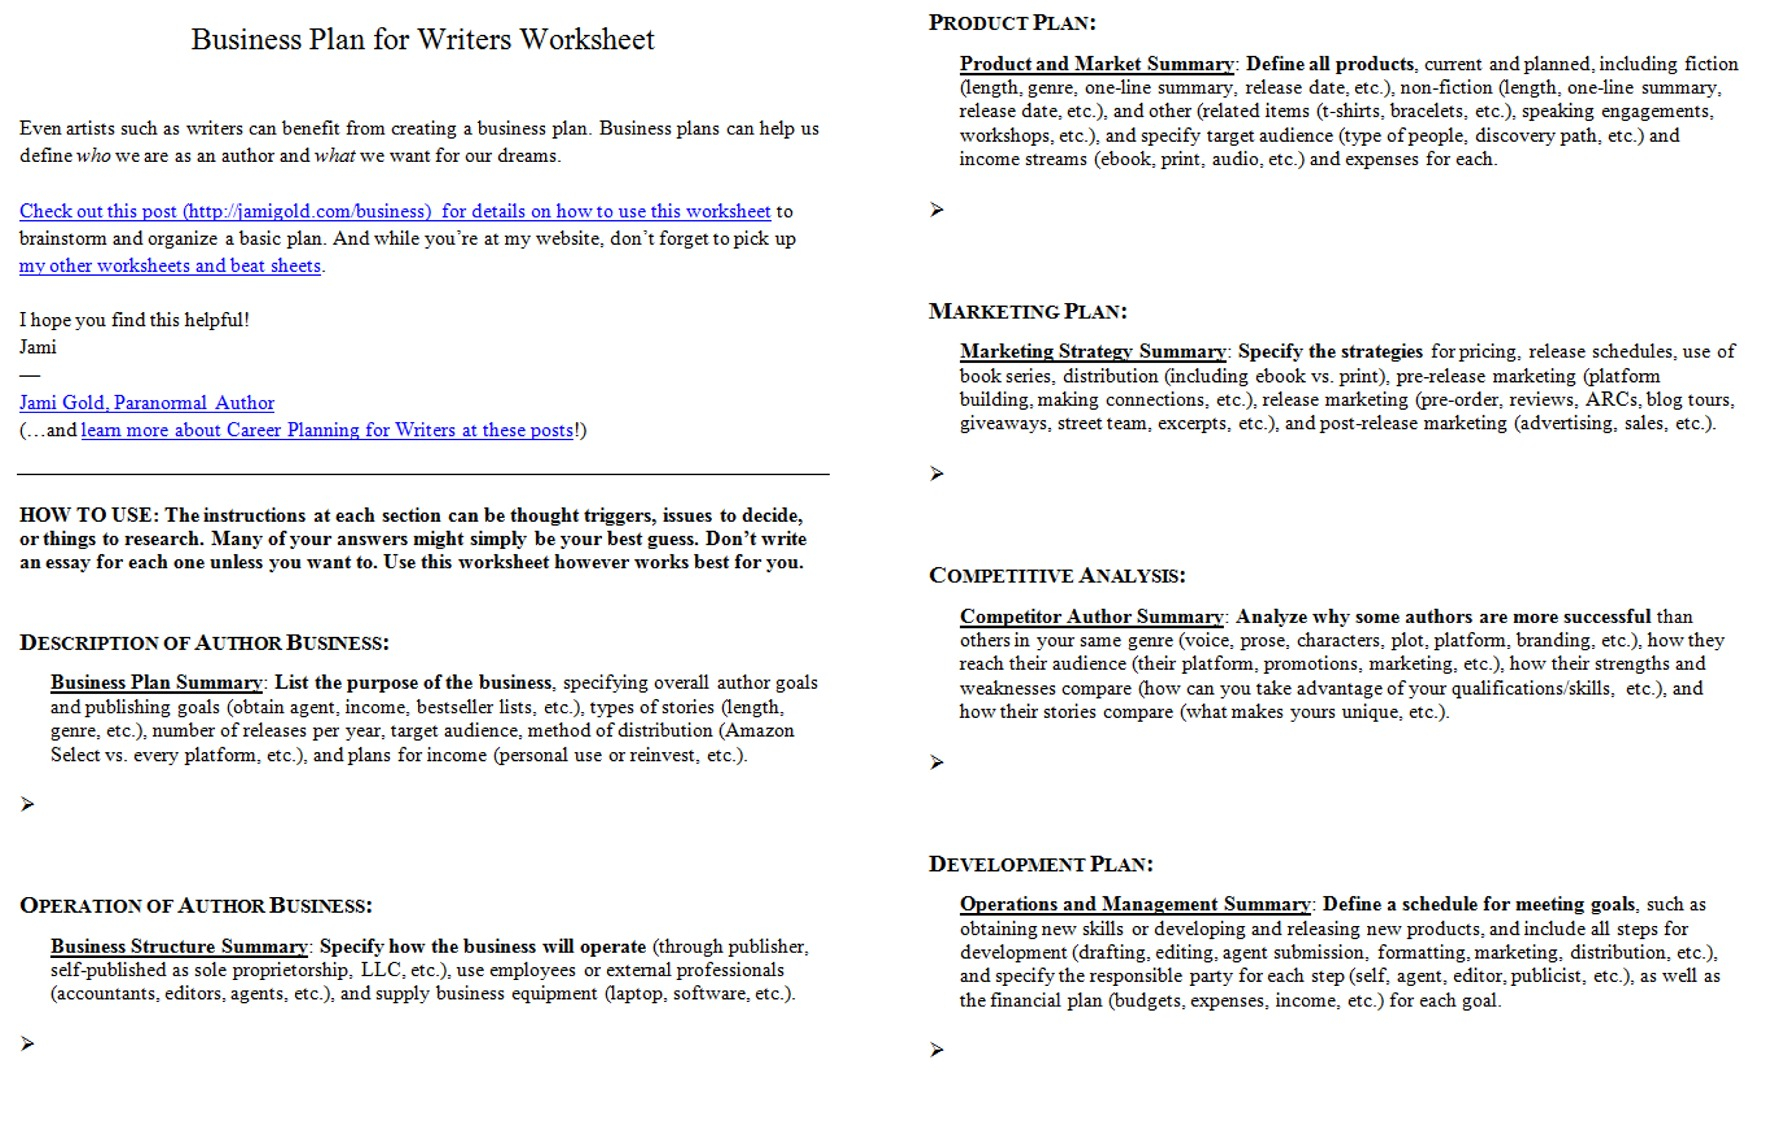 Weirdmailus  Splendid Worksheets For Writers  Jami Gold Paranormal Author With Hot Screen Shot Of Both Pages Of The Business Plan For Writers Worksheet With Captivating Customary Units Of Weight Worksheets Also Egg Osmosis Lab Worksheet In Addition Composite Shapes Area Worksheet And Weekly Budget Worksheet Printable As Well As Taxonomy Worksheets Additionally Participles And Participial Phrases Worksheet From Jamigoldcom With Weirdmailus  Hot Worksheets For Writers  Jami Gold Paranormal Author With Captivating Screen Shot Of Both Pages Of The Business Plan For Writers Worksheet And Splendid Customary Units Of Weight Worksheets Also Egg Osmosis Lab Worksheet In Addition Composite Shapes Area Worksheet From Jamigoldcom